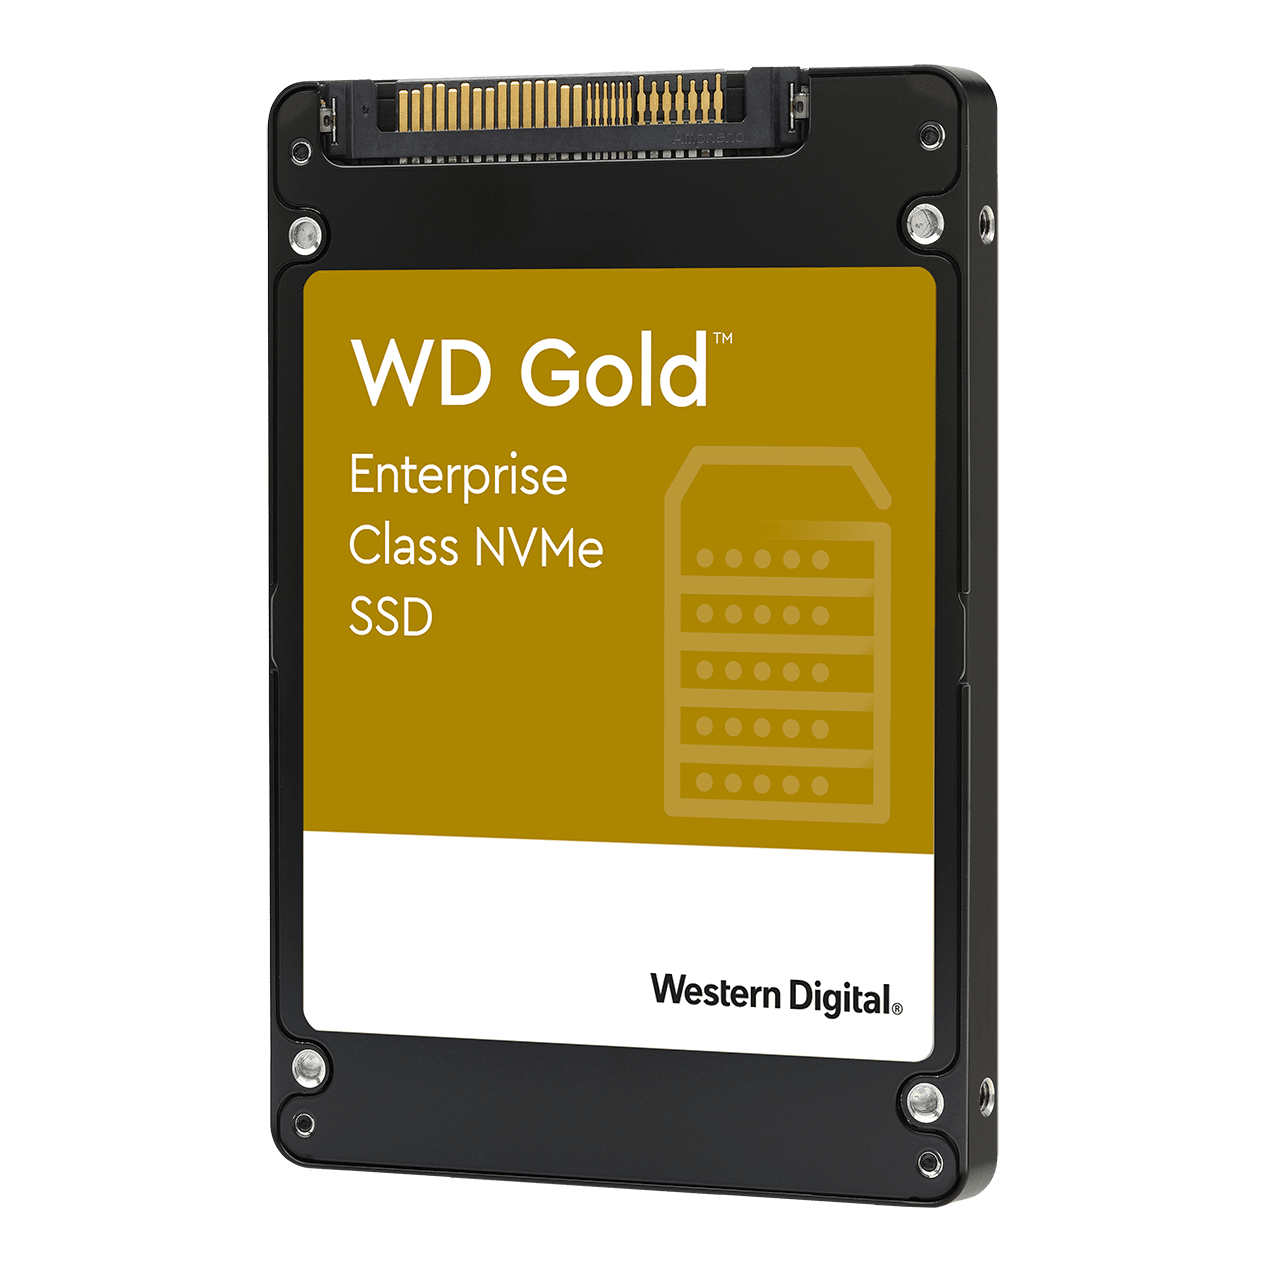 wd-gold-nvme-ssd-angle